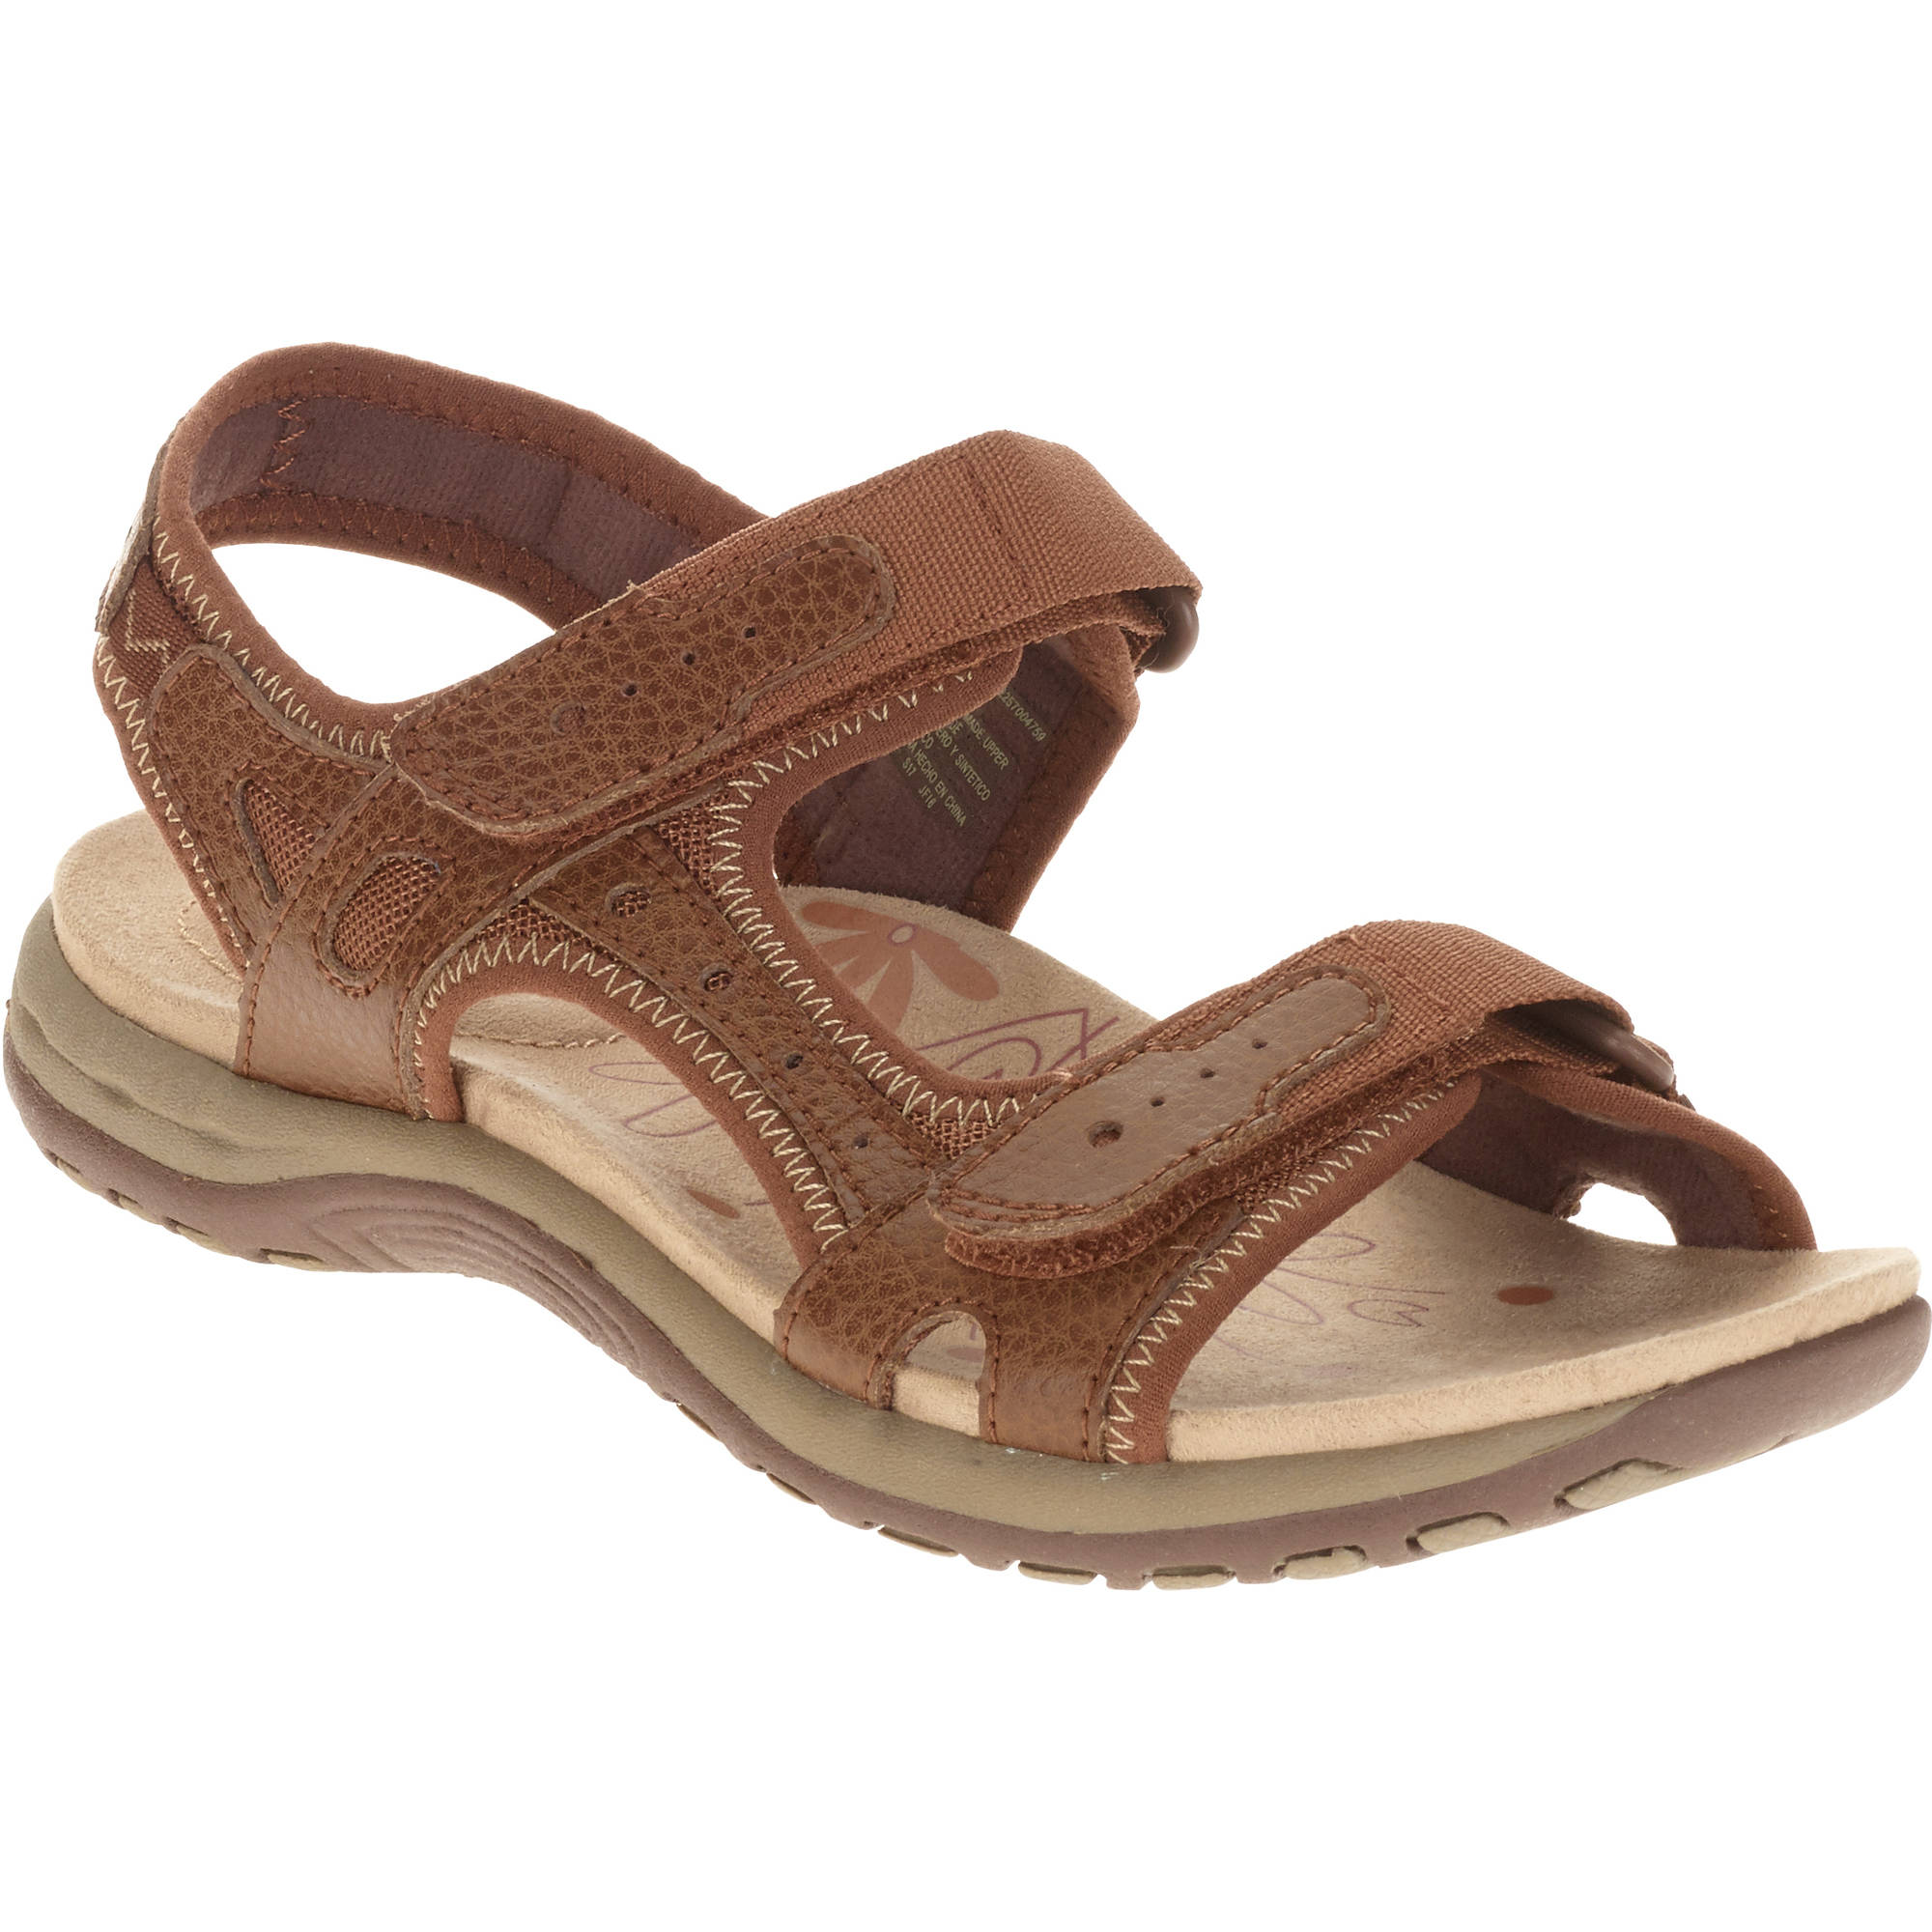 Earth shoes sandals uk